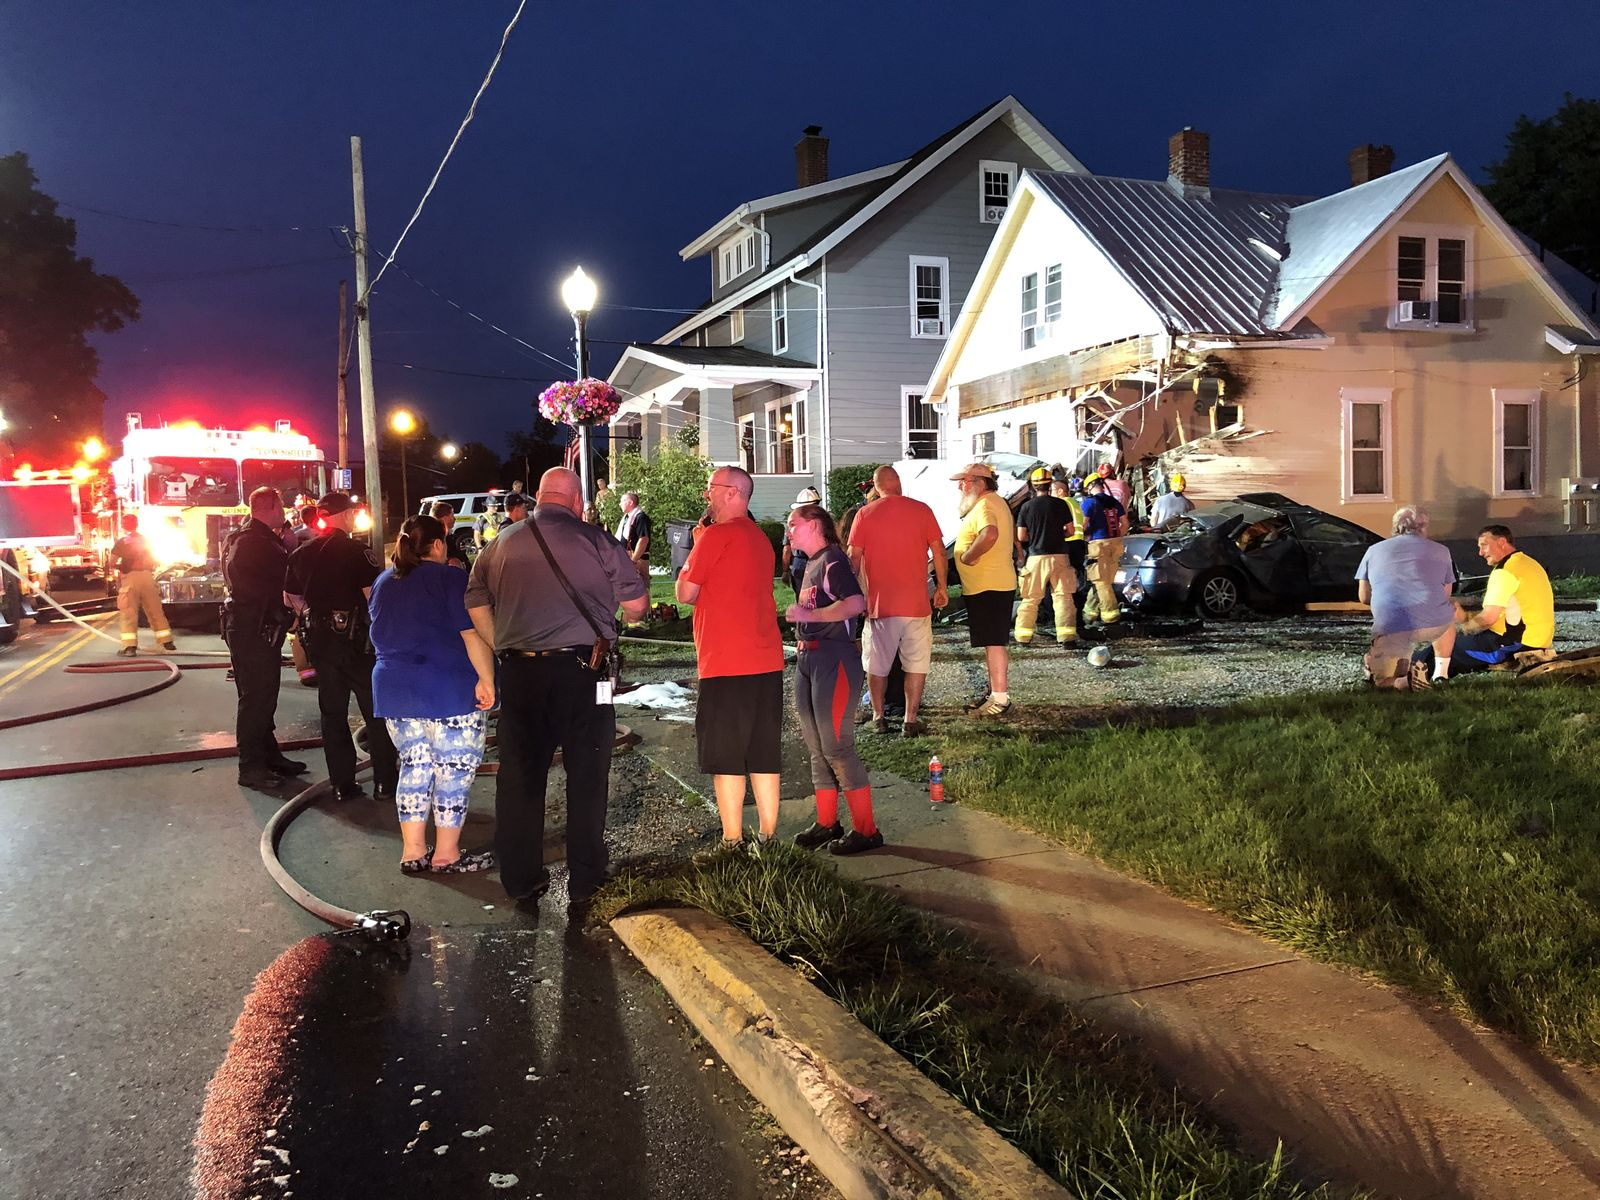 <p>A woman has been sent to the hospital after fire officials said her car crashed into a home in Delaware County. The incident happened on Saturday night on West Cherry Street in Sunbury.{&nbsp;} (WSYX/WTTE){&nbsp;}</p>